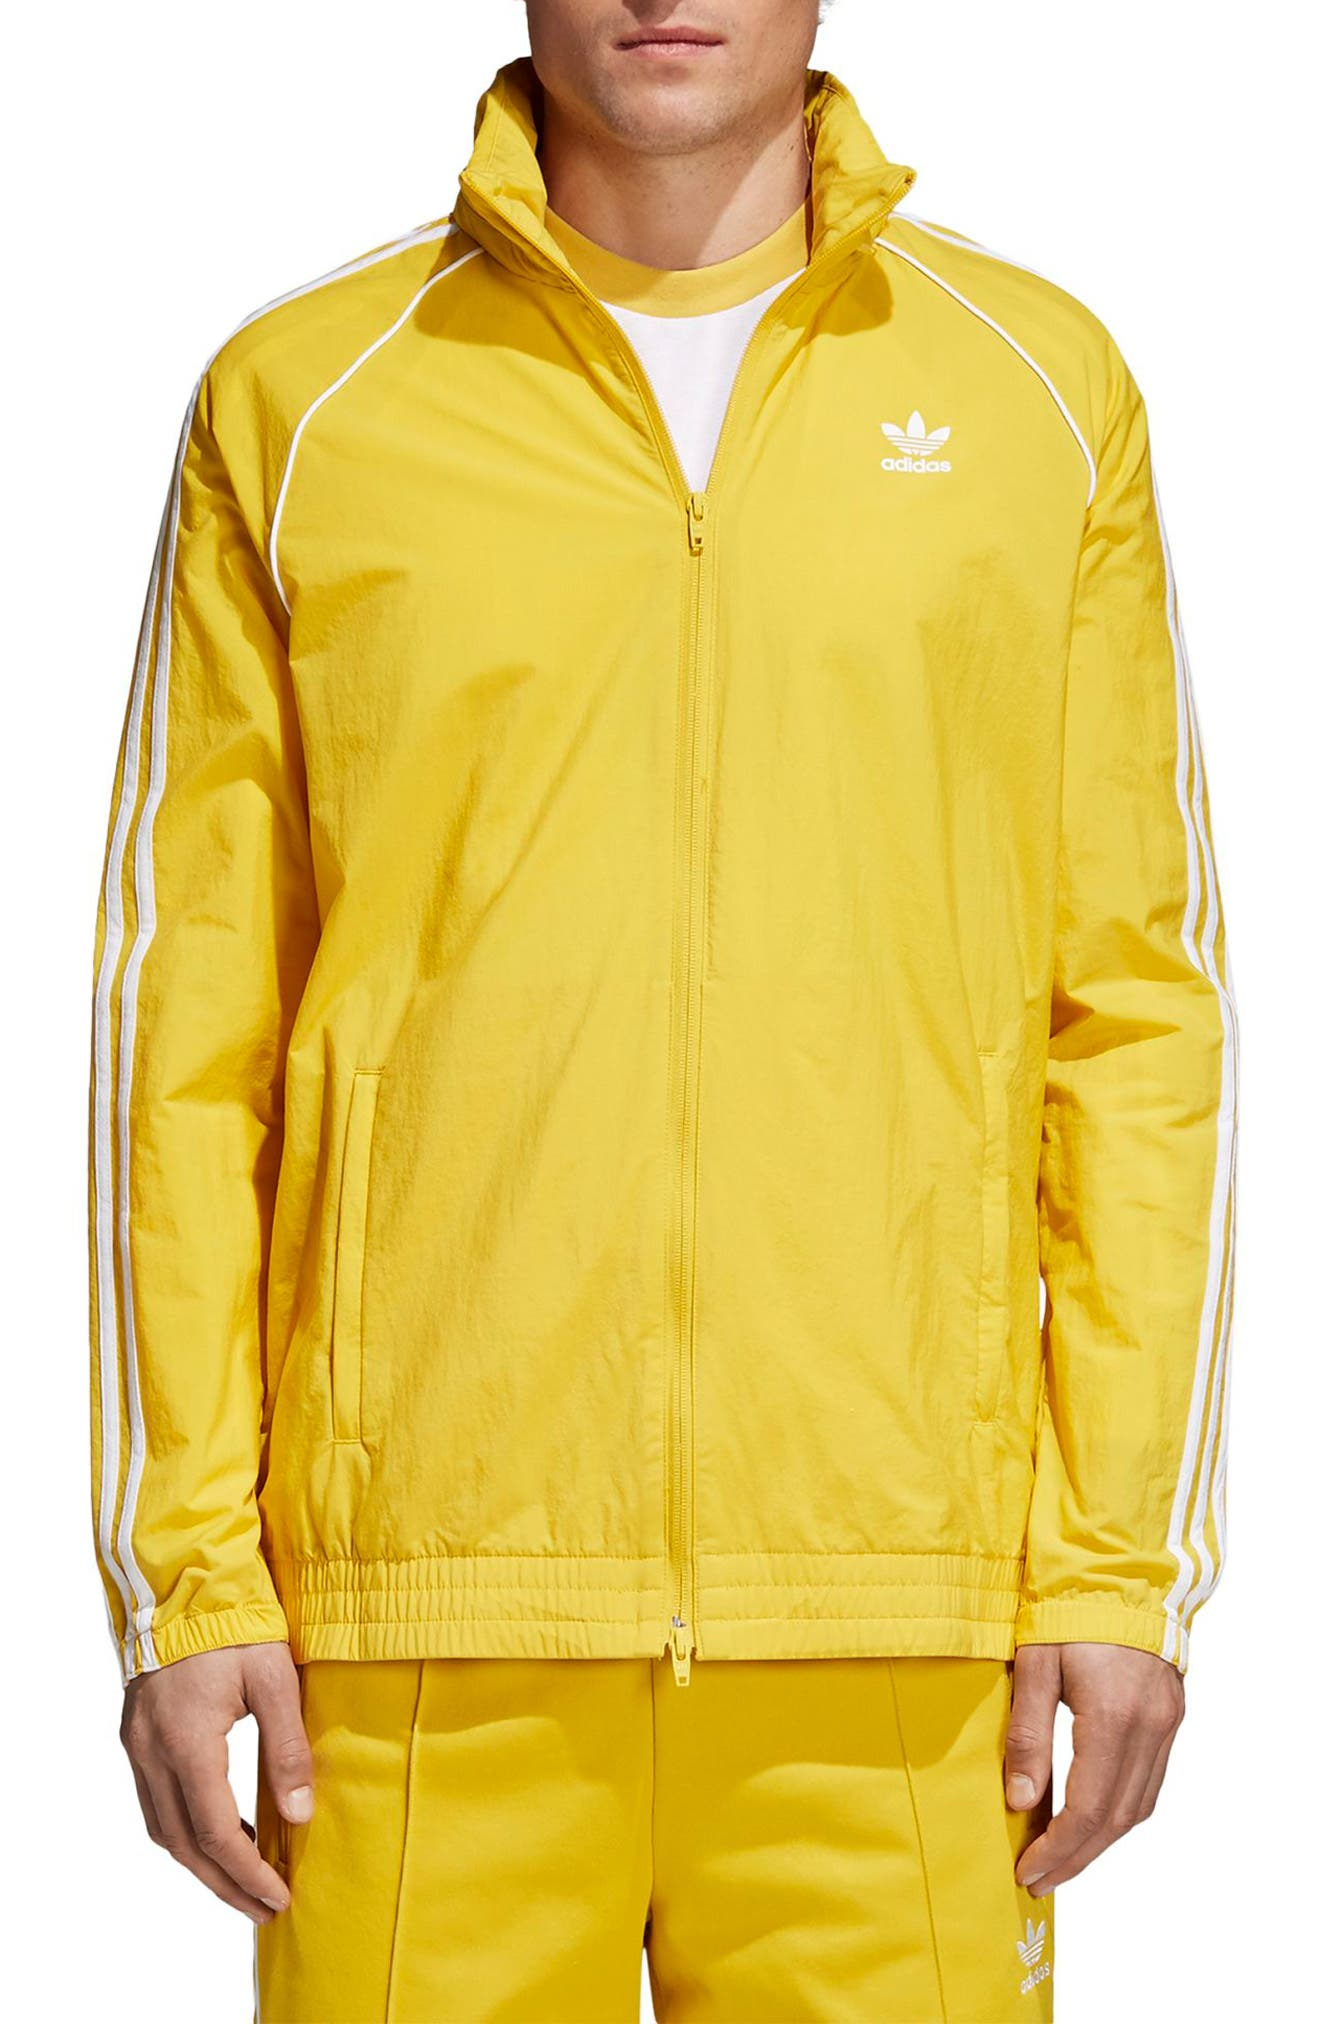 SST Windbreaker,                             Main thumbnail 1, color,                             Tribe Yellow